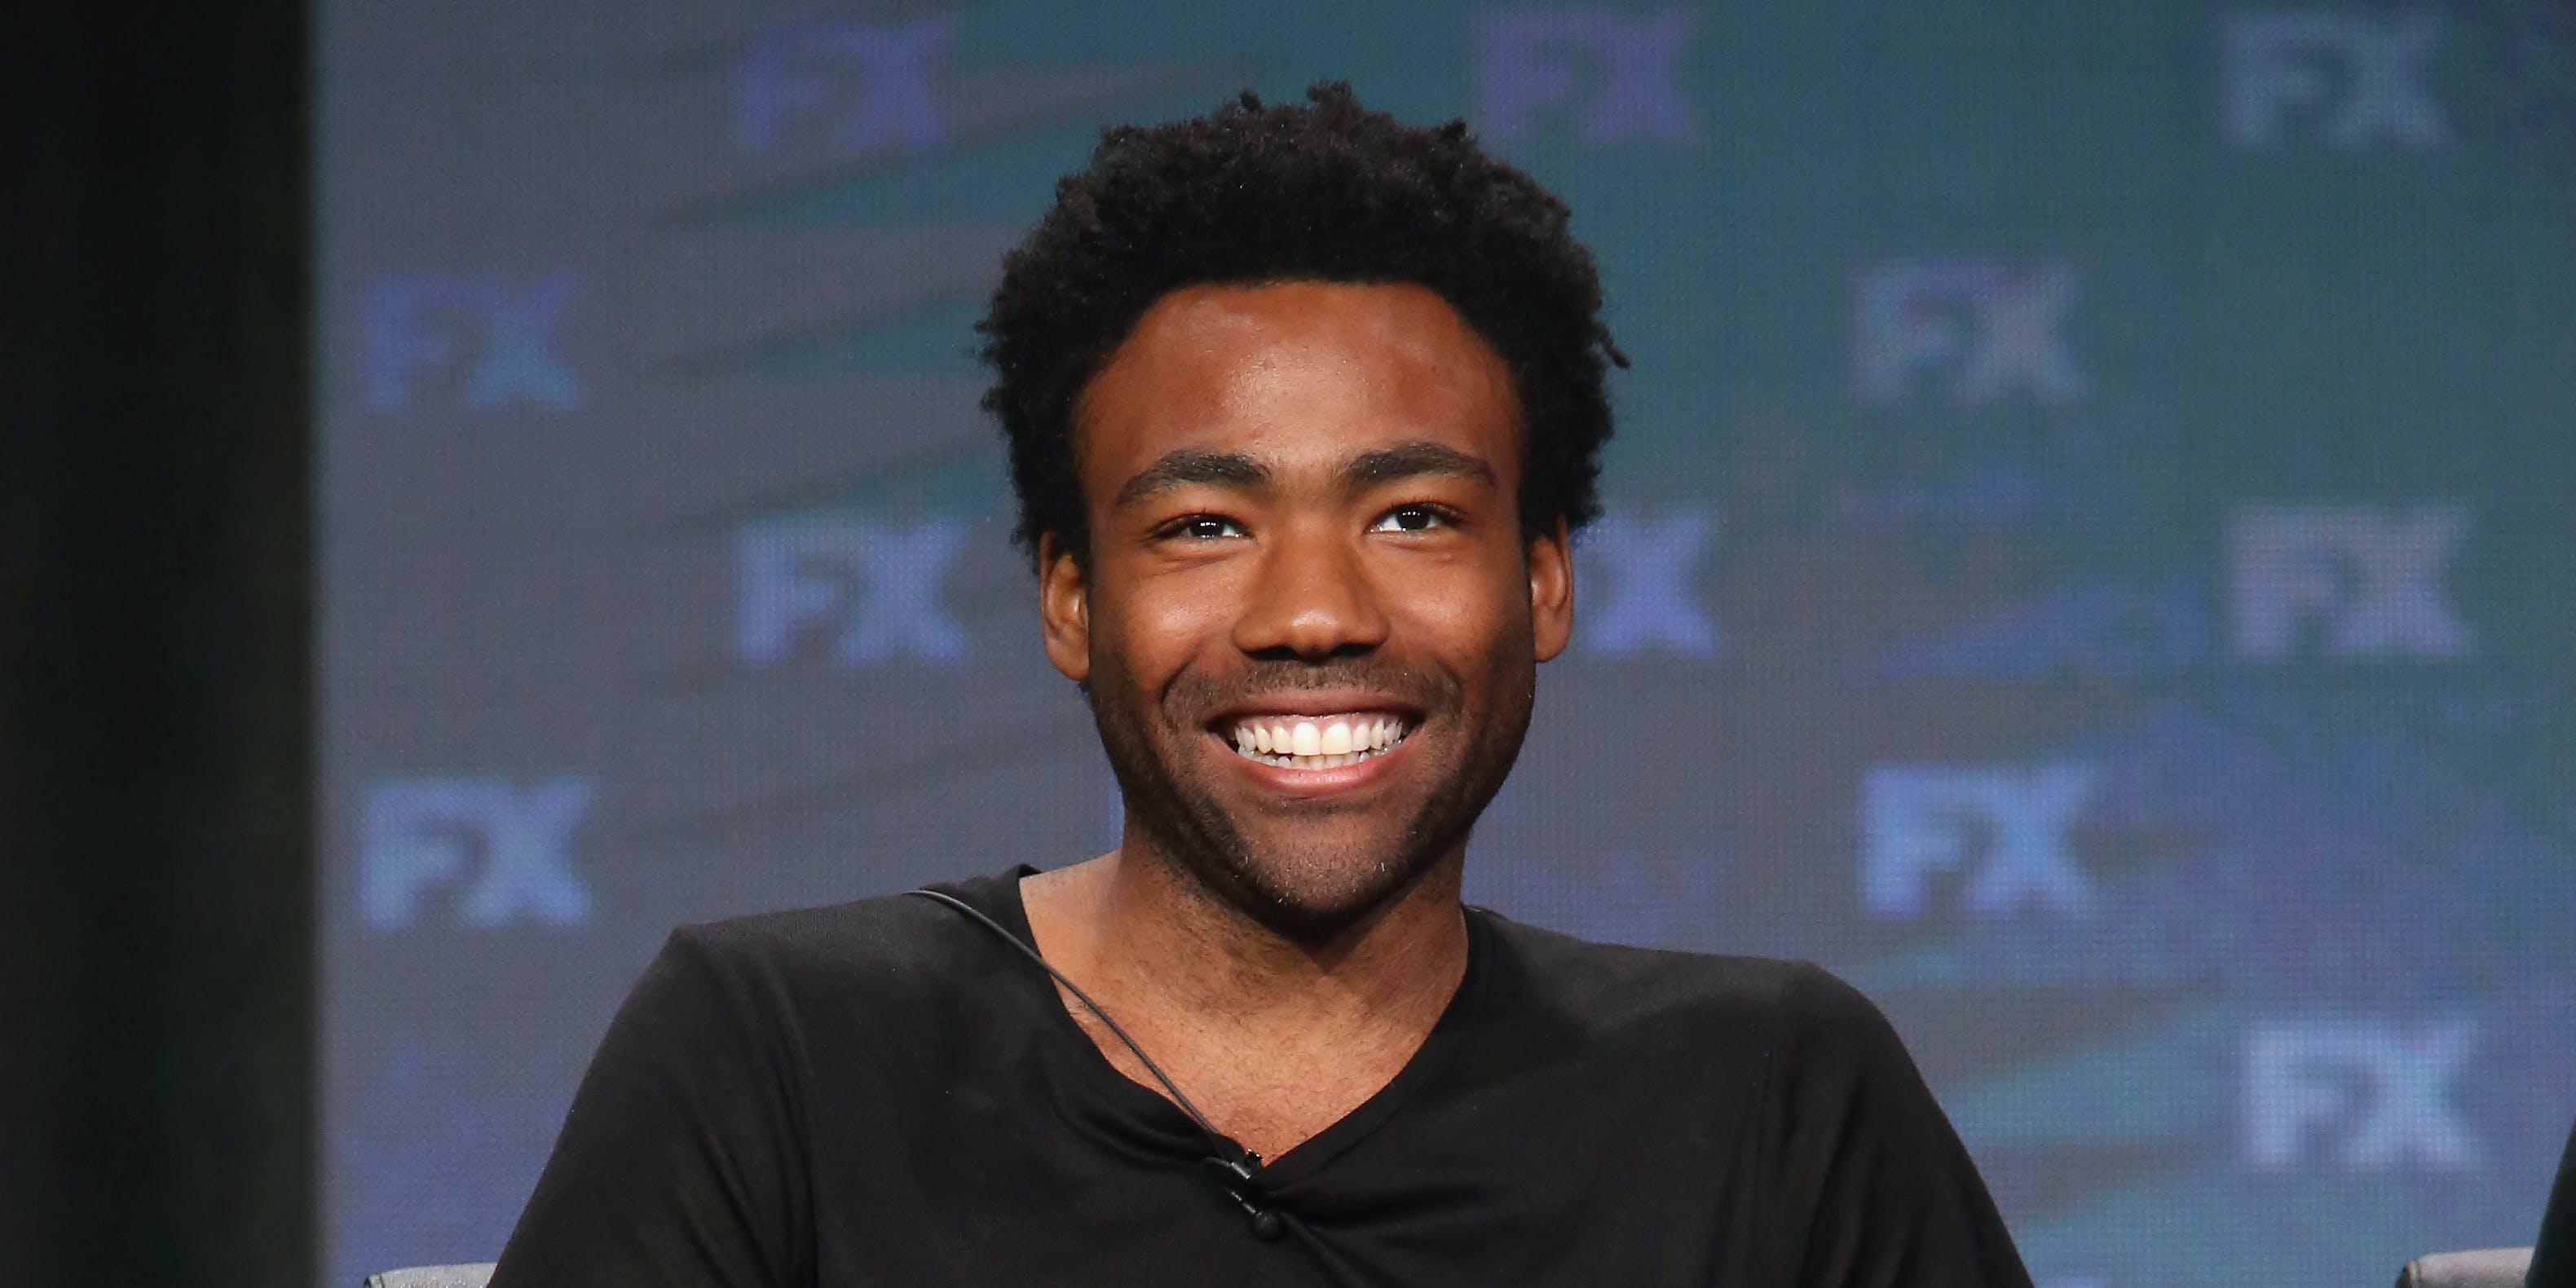 BEVERLY HILLS, CA - AUGUST 09:  Creator/executive producer/writer/actor Donald Glover speaks onstage at 'Atlanta' panel discussion during the FX portion of the 2016 Television Critics Association Summer Tour at The Beverly Hilton Hotel on August 9, 2016 in Beverly Hills, California.  (Photo by Frederick M. Brown/Getty Images)